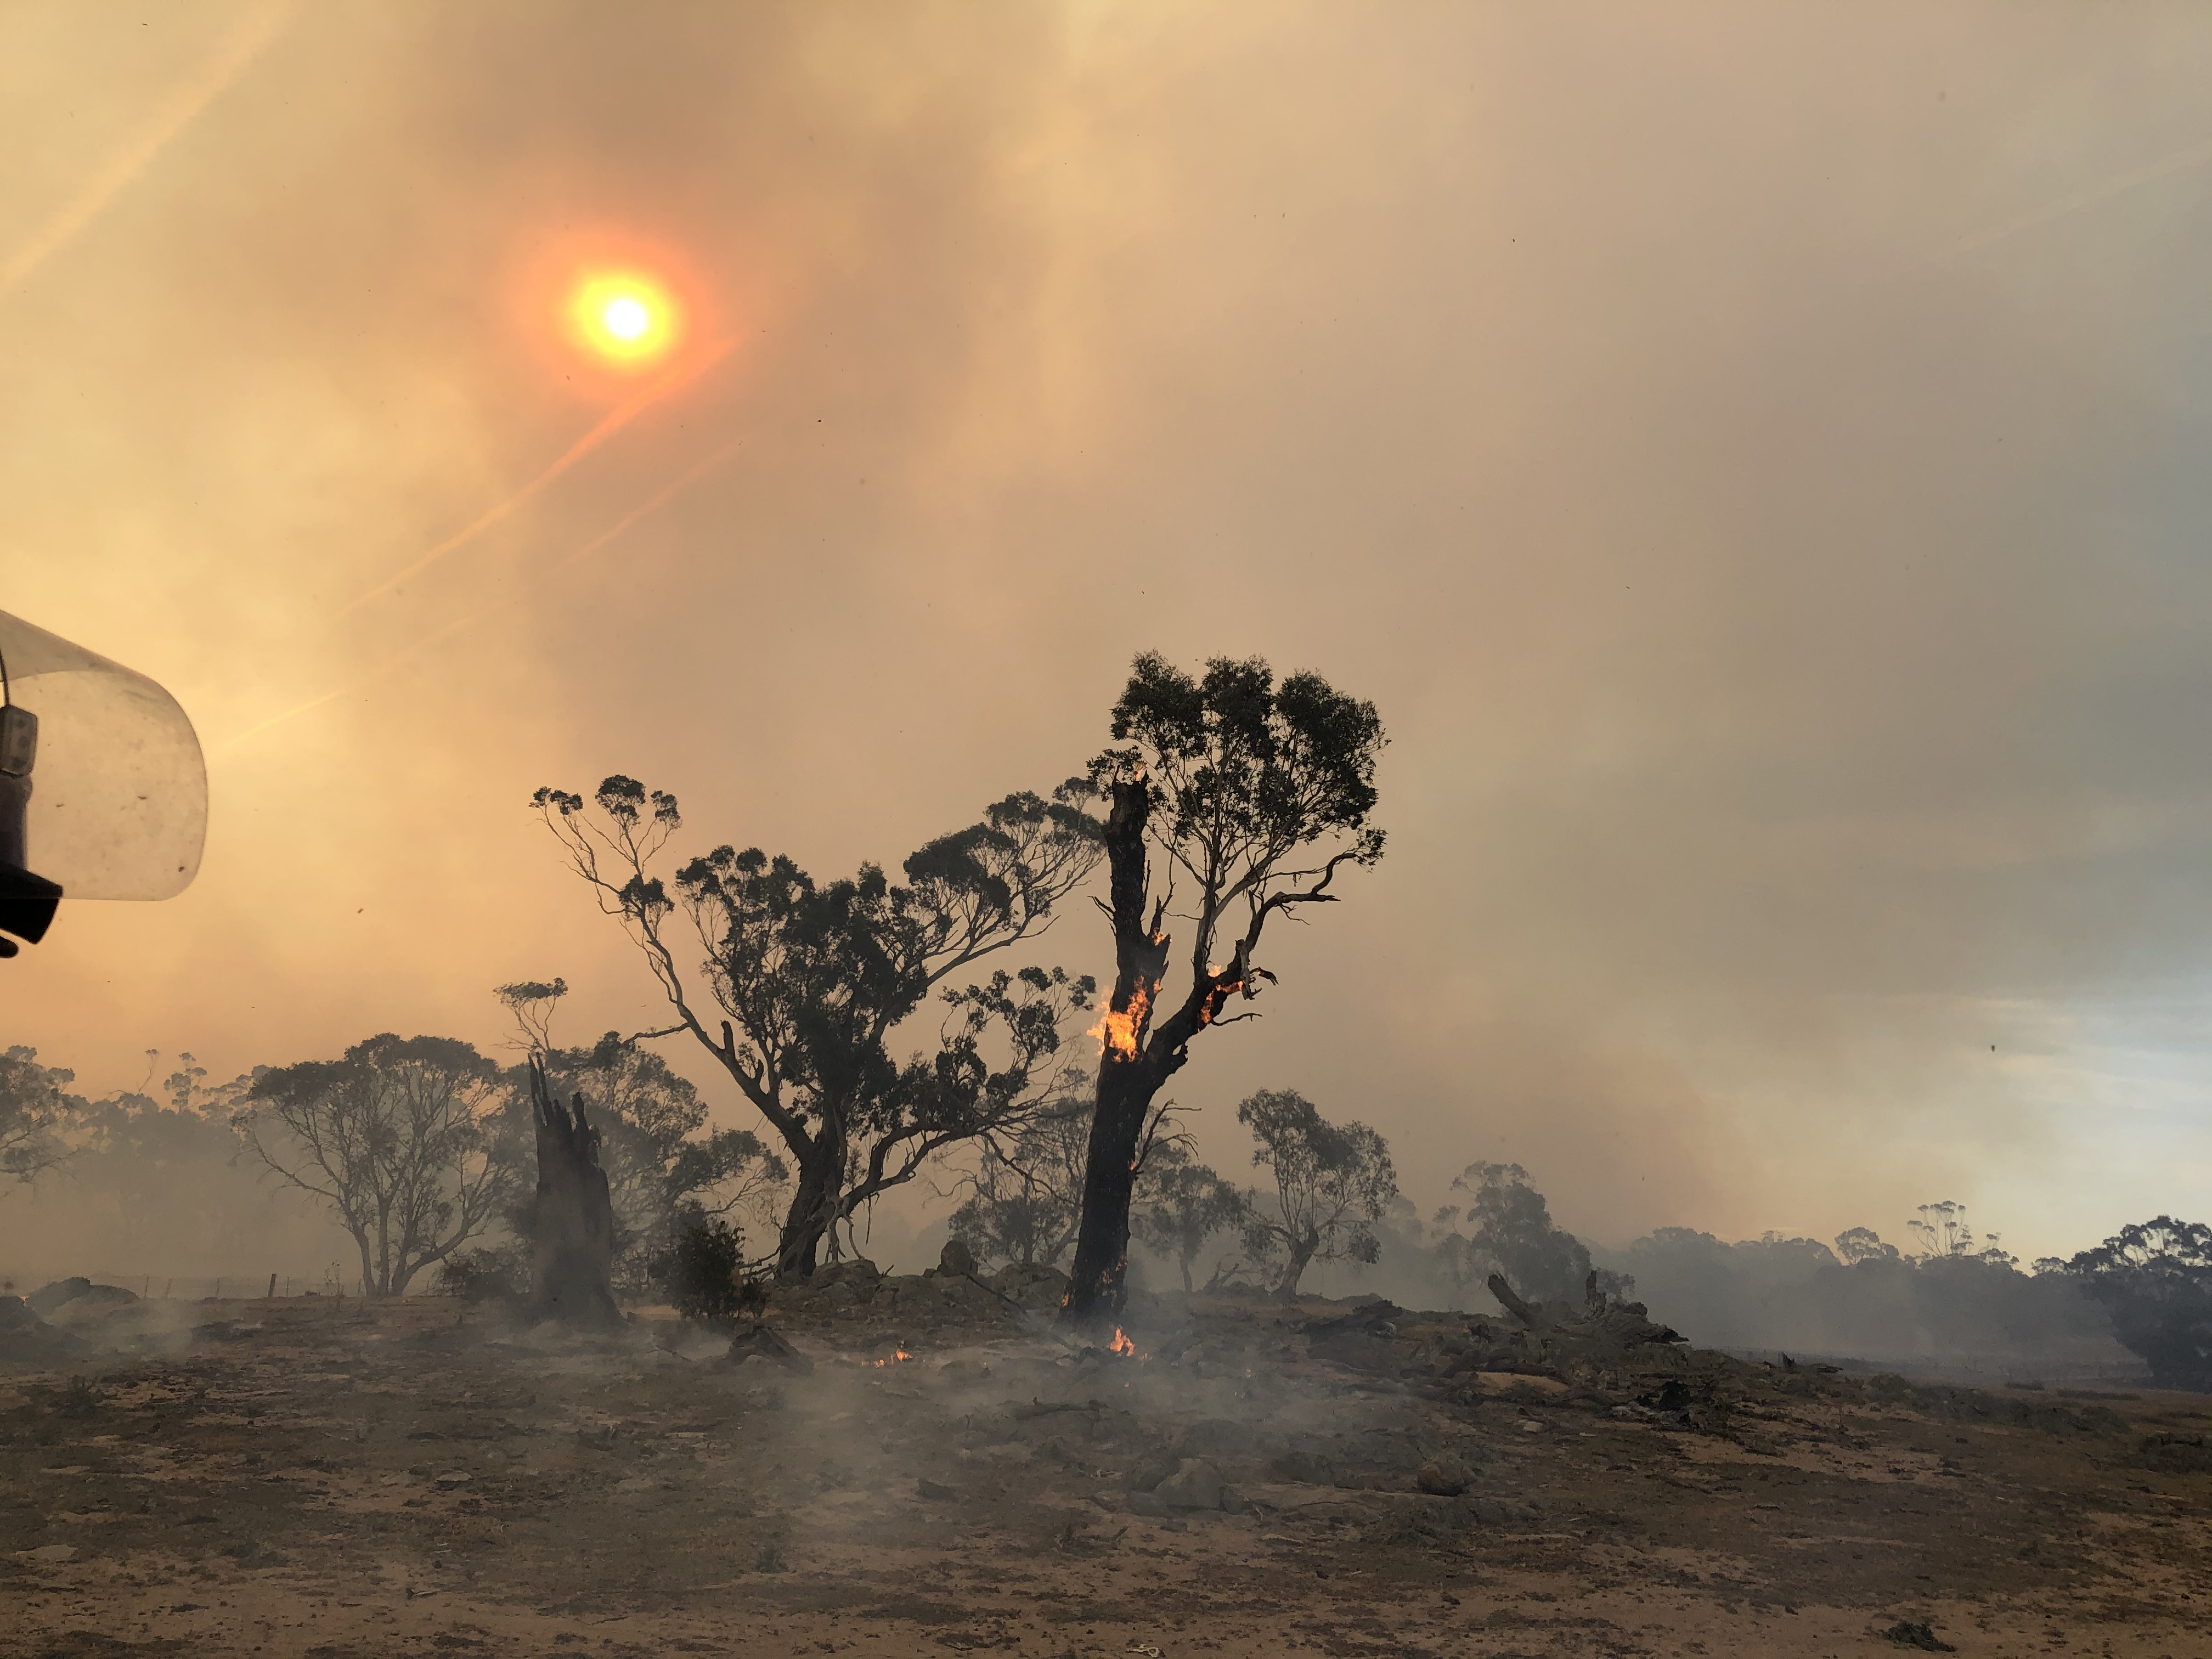 Aftermath of a bushfire showing blackend ground and a large tree with burning trunk still with some leafy branches at the very top and the sun glowing red through the smokey sky.